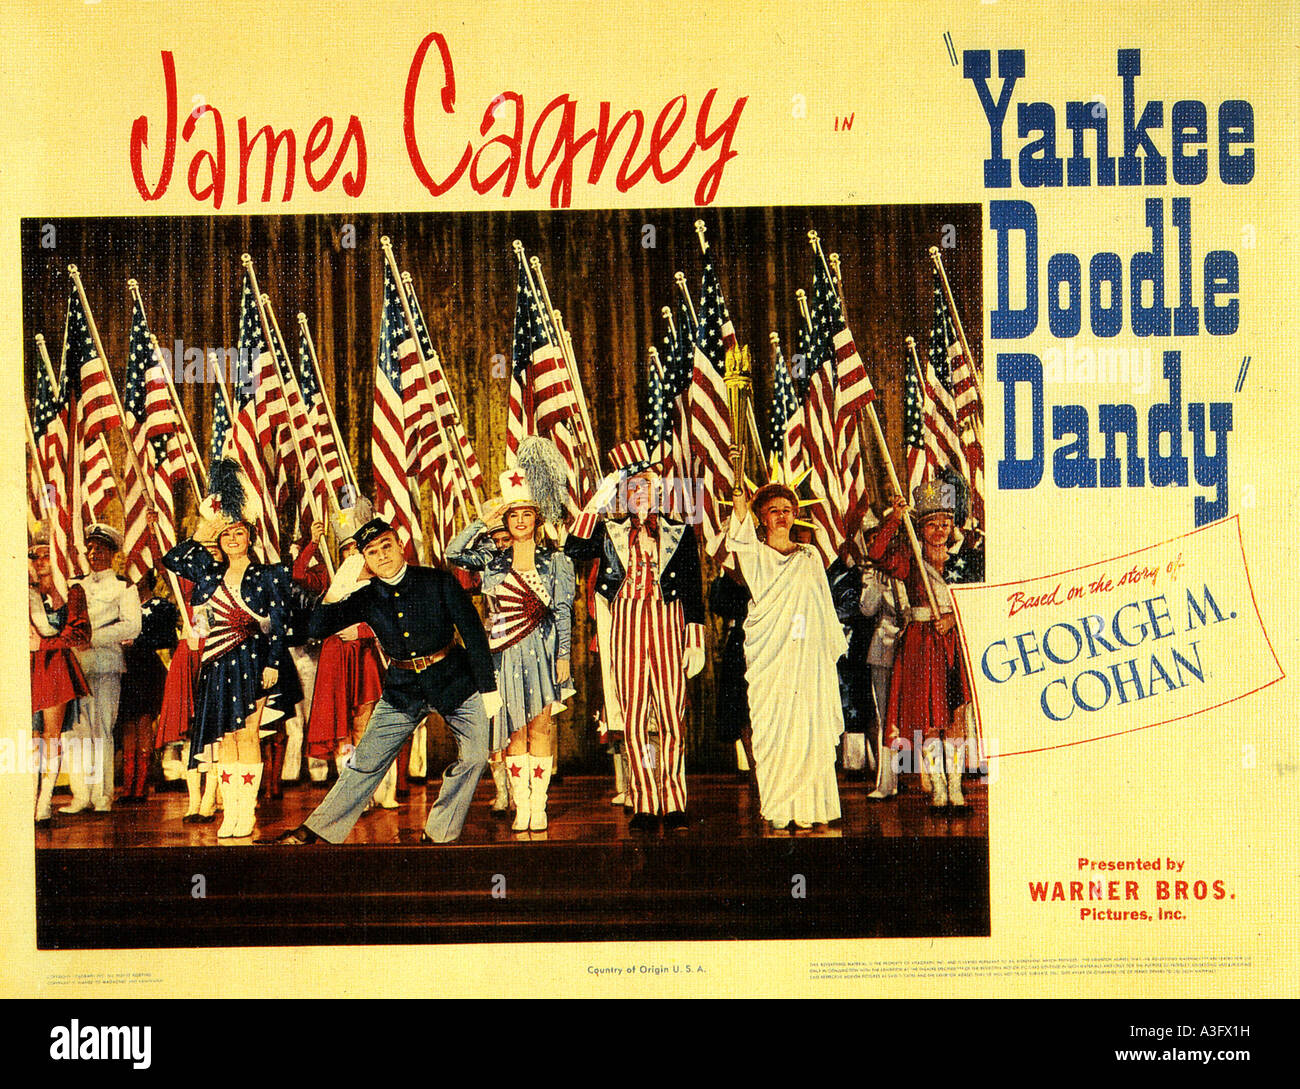 YANKEE DOODLE DANDY 1942 Warner film biopic with James Cagney as the real life George M Cohan - Stock Image